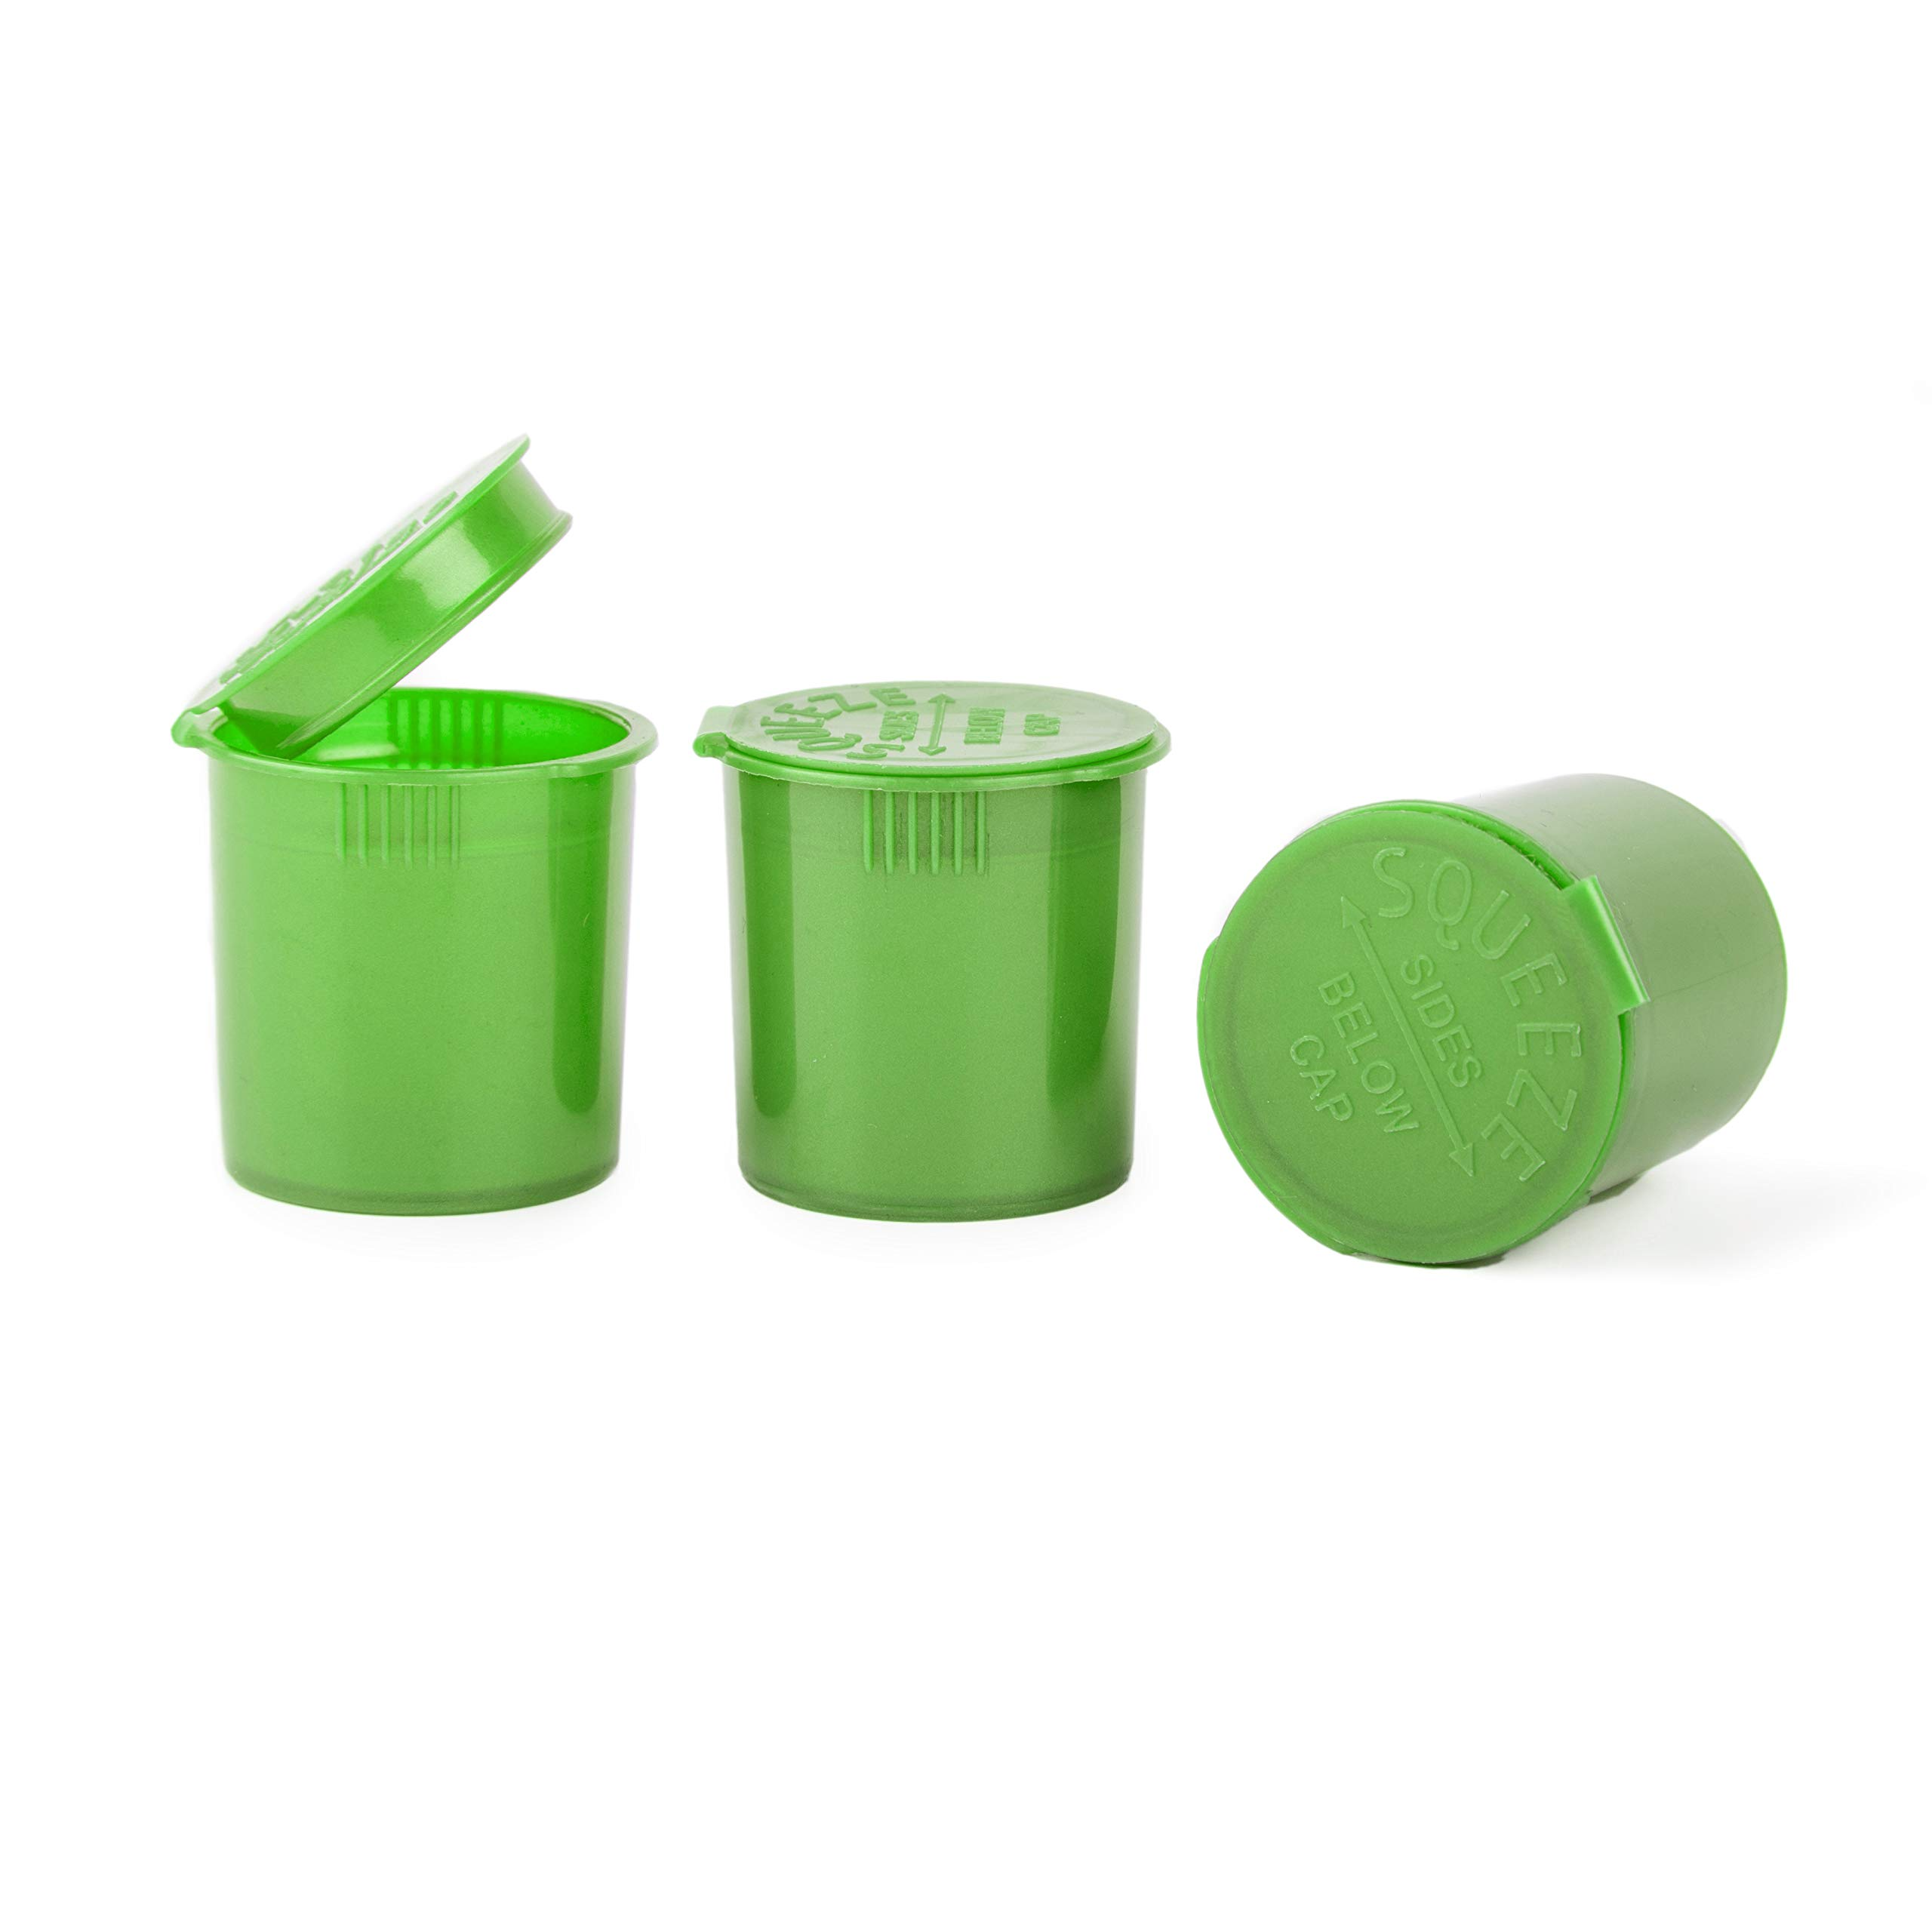 Loud Lock - Pop Top Vial Container Bottles - 6 Dram Size - 600 Count Case (Green) by Loud Lock